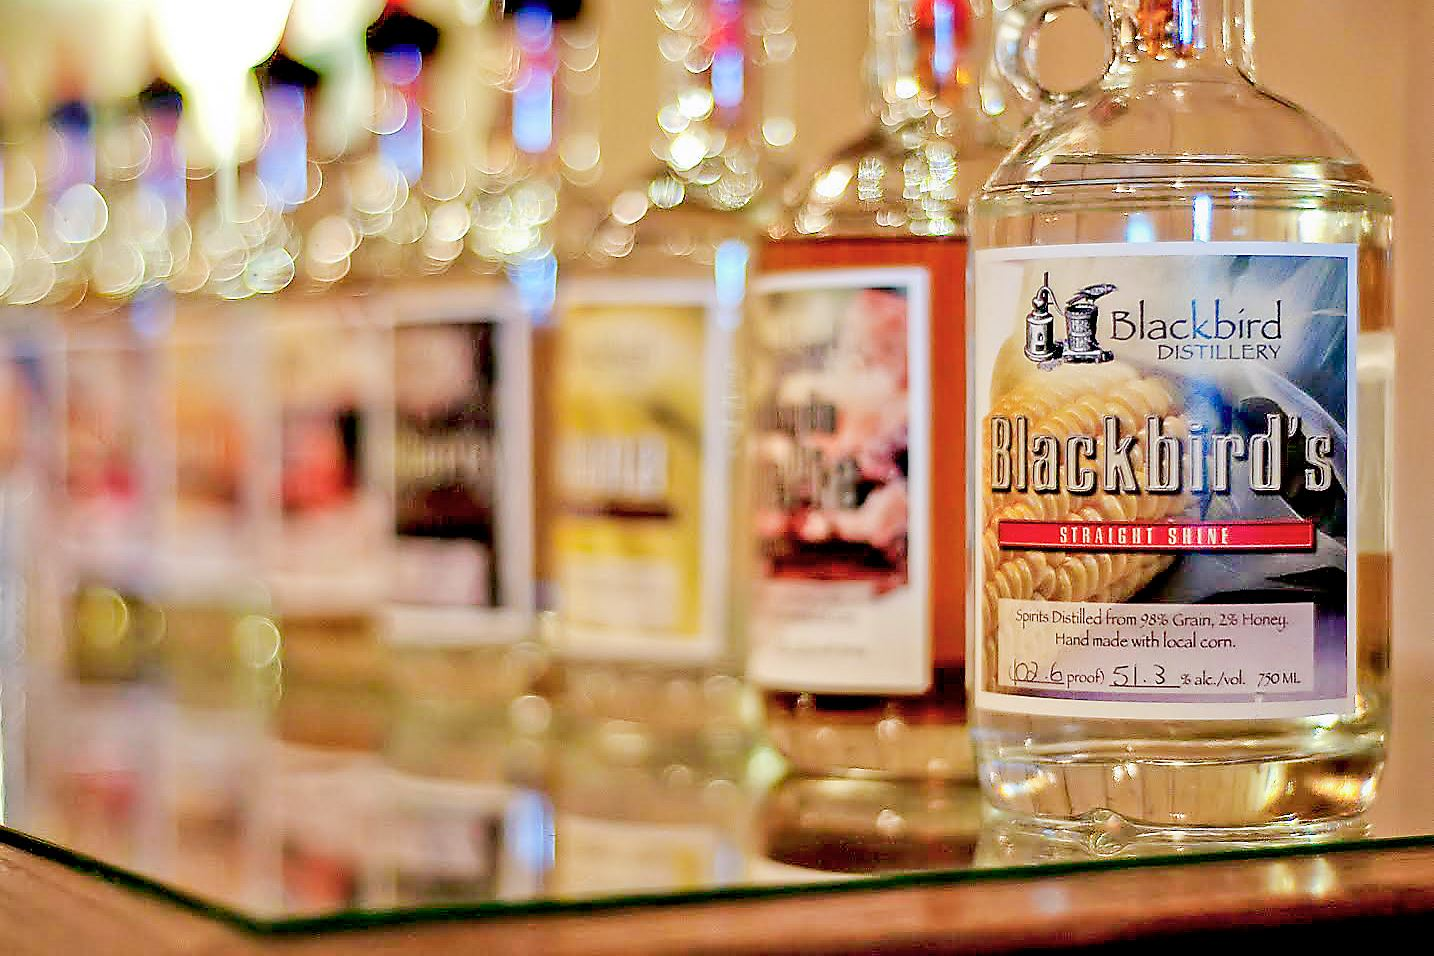 blackbirdB-1 Moonshine is the main product at Blackbird Distillery in Brookville, Pa.